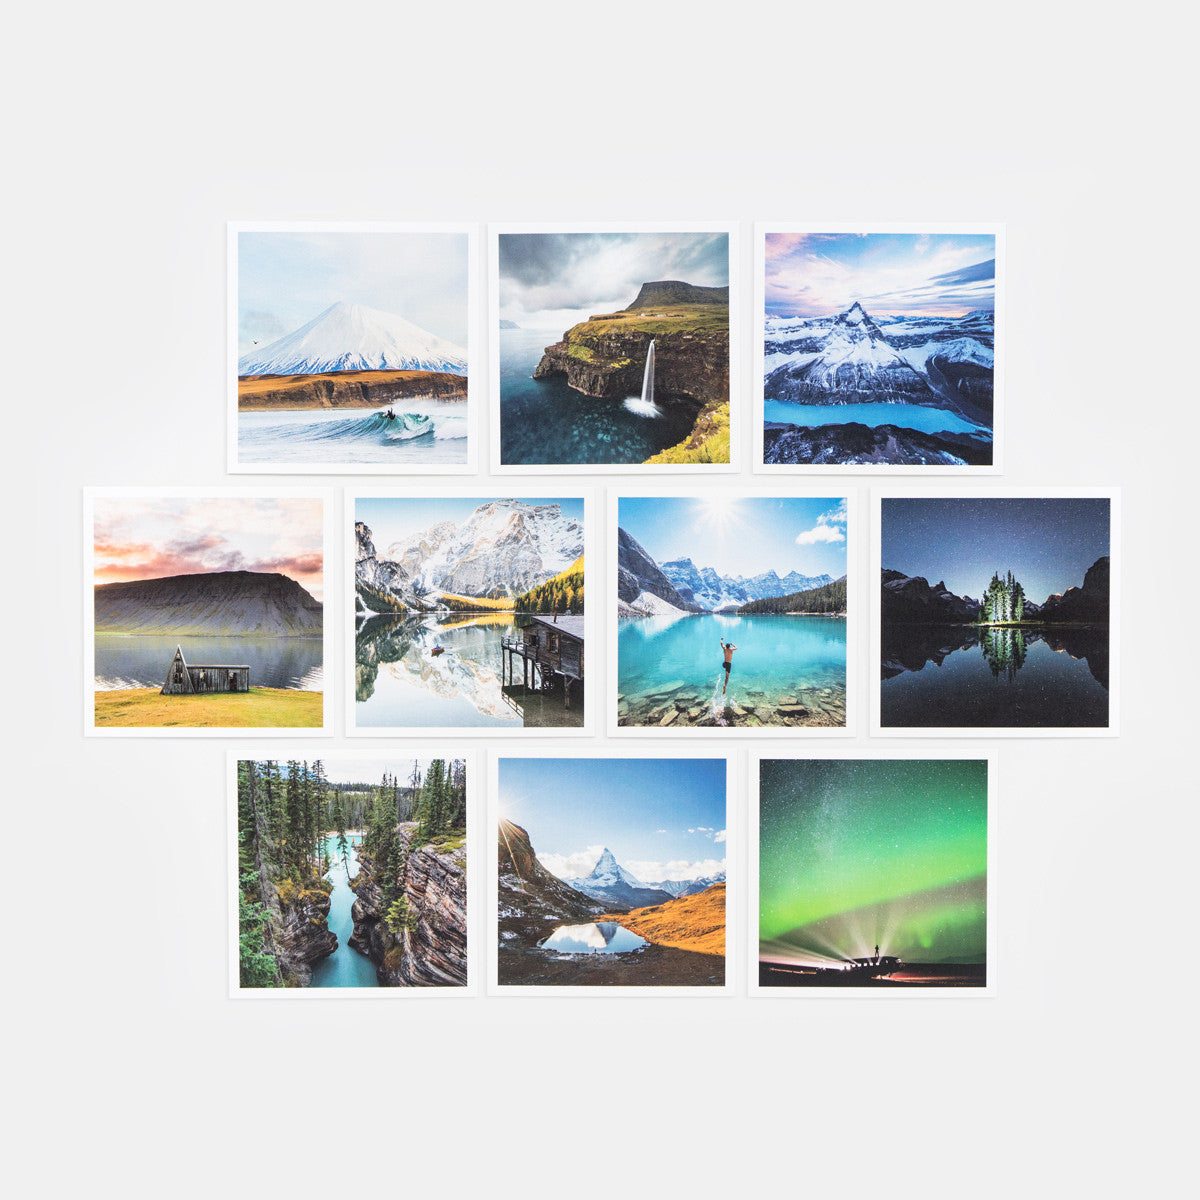 Chris Burkard Square Print Collection